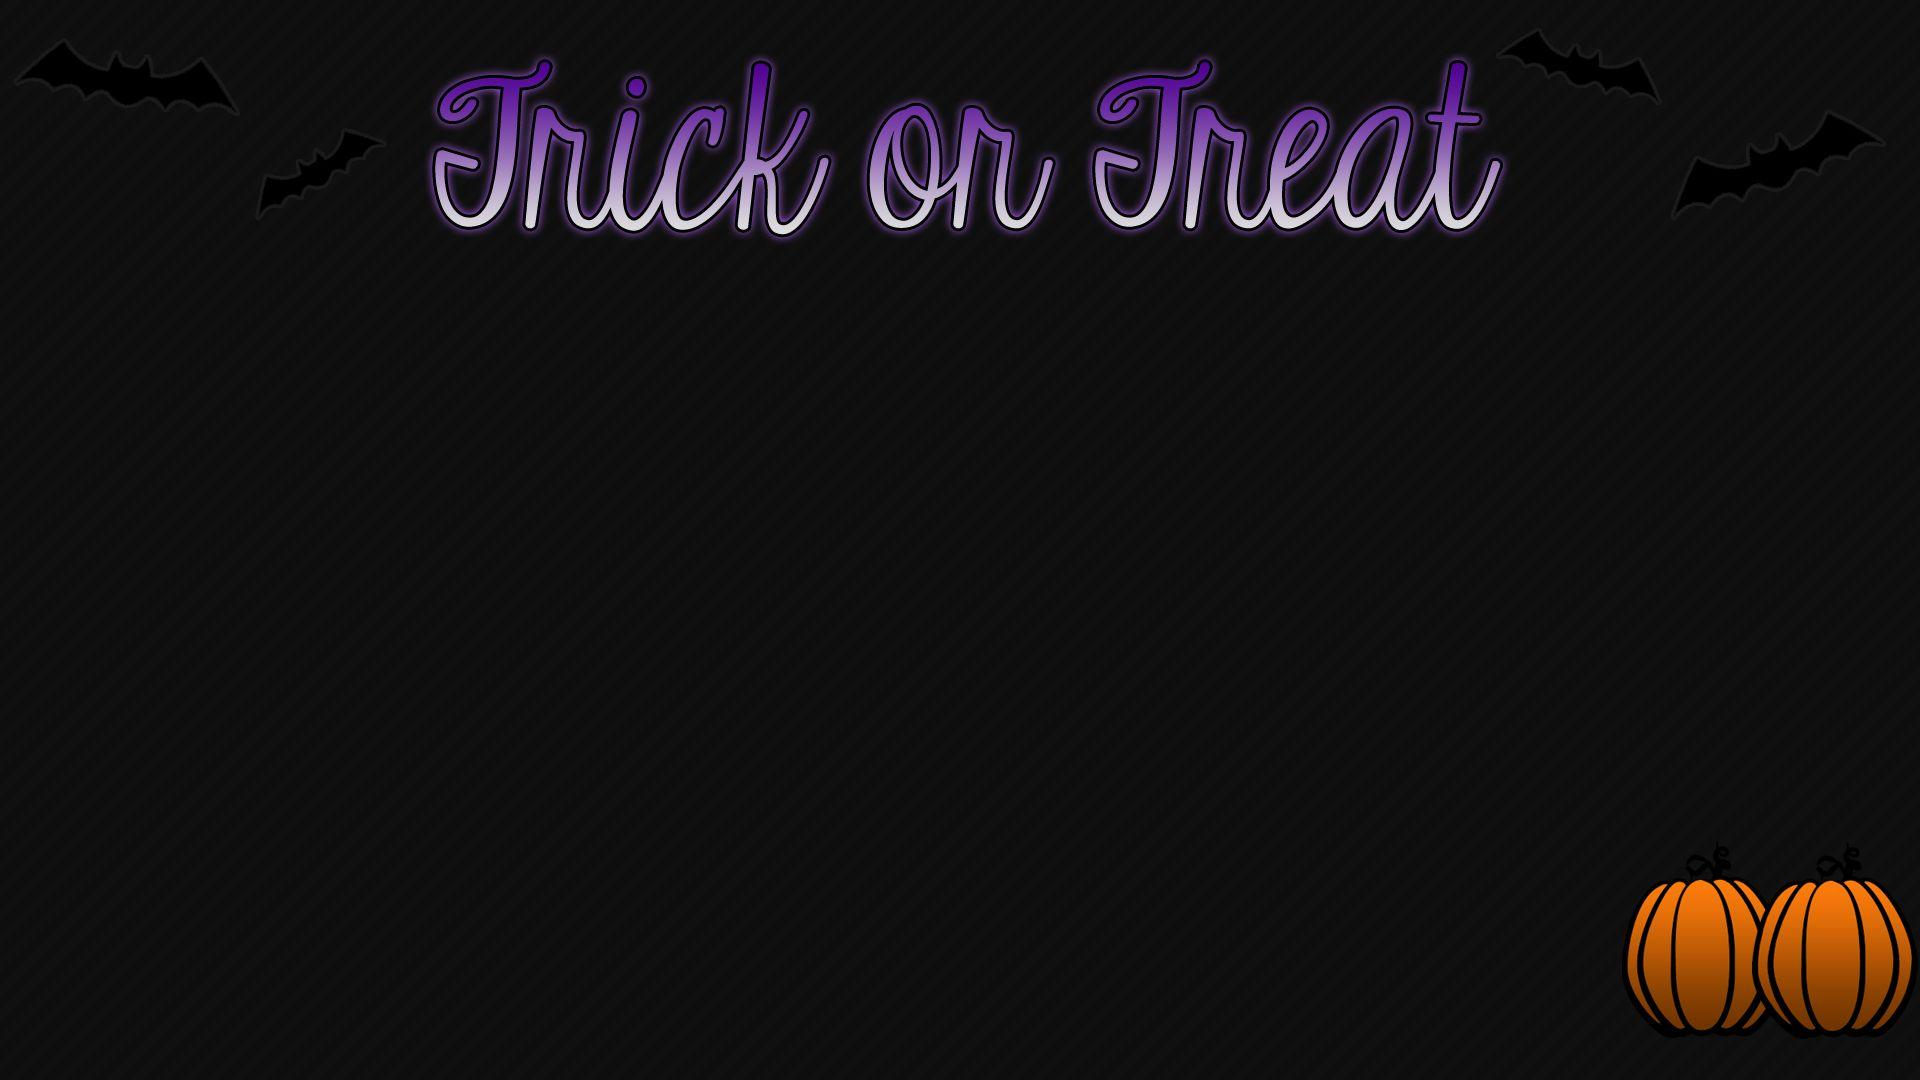 Trick or Treat Halloween Wallpapers 1920x1080 by Sleepy